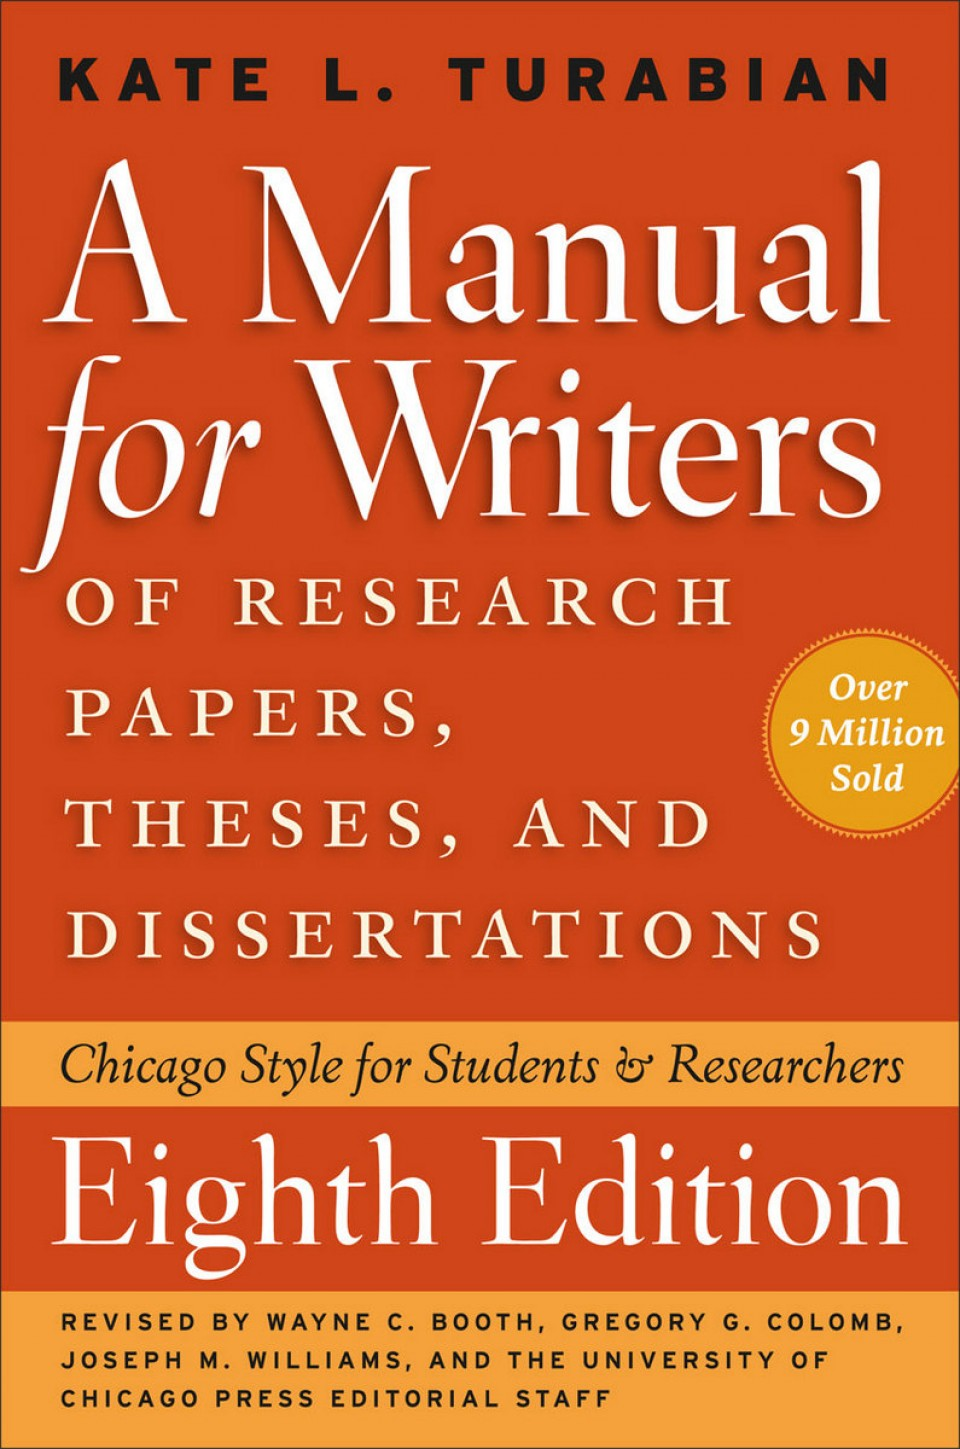 003 Research Paper Frontcover Manual For Writers Of Papers Theses And Dissertations Amazing A Turabian Pdf 960